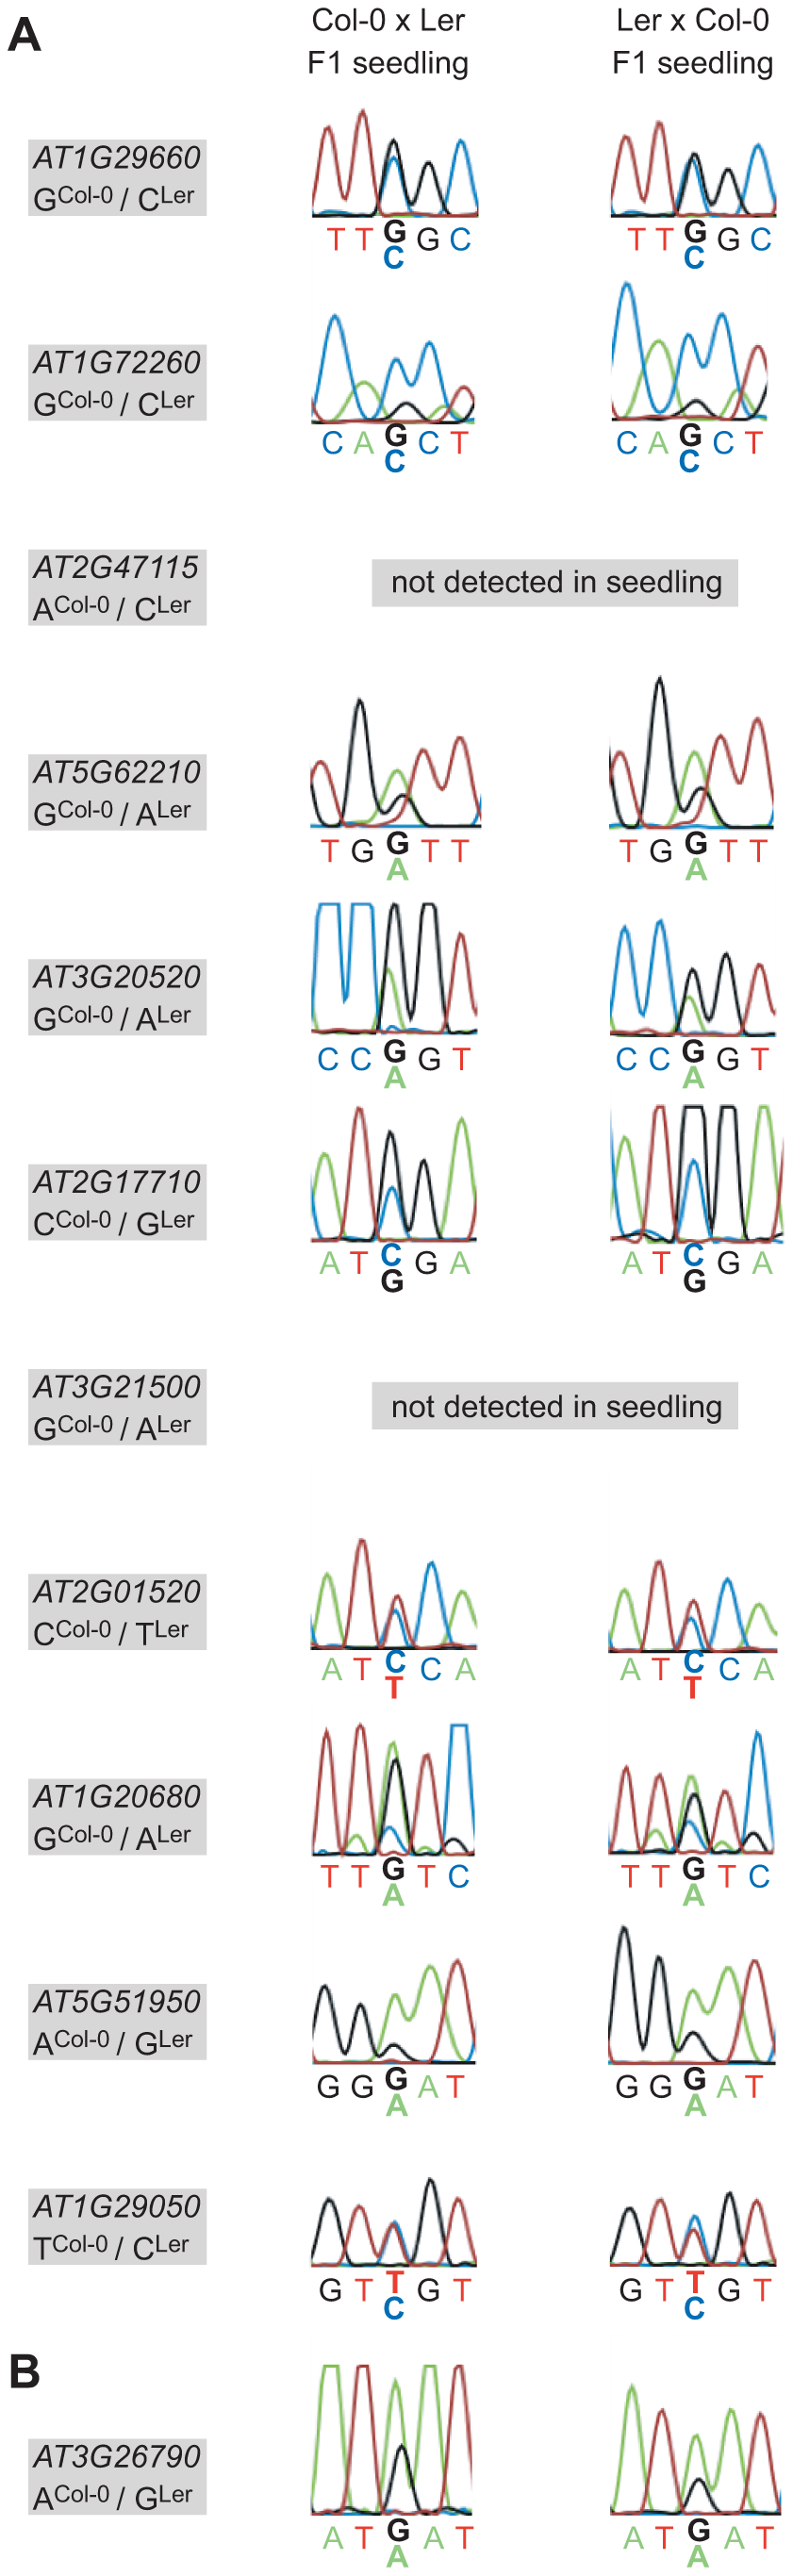 Allele-specific expression analysis of confirmed MEGs and the PEG in hybrid F1 seedlings.